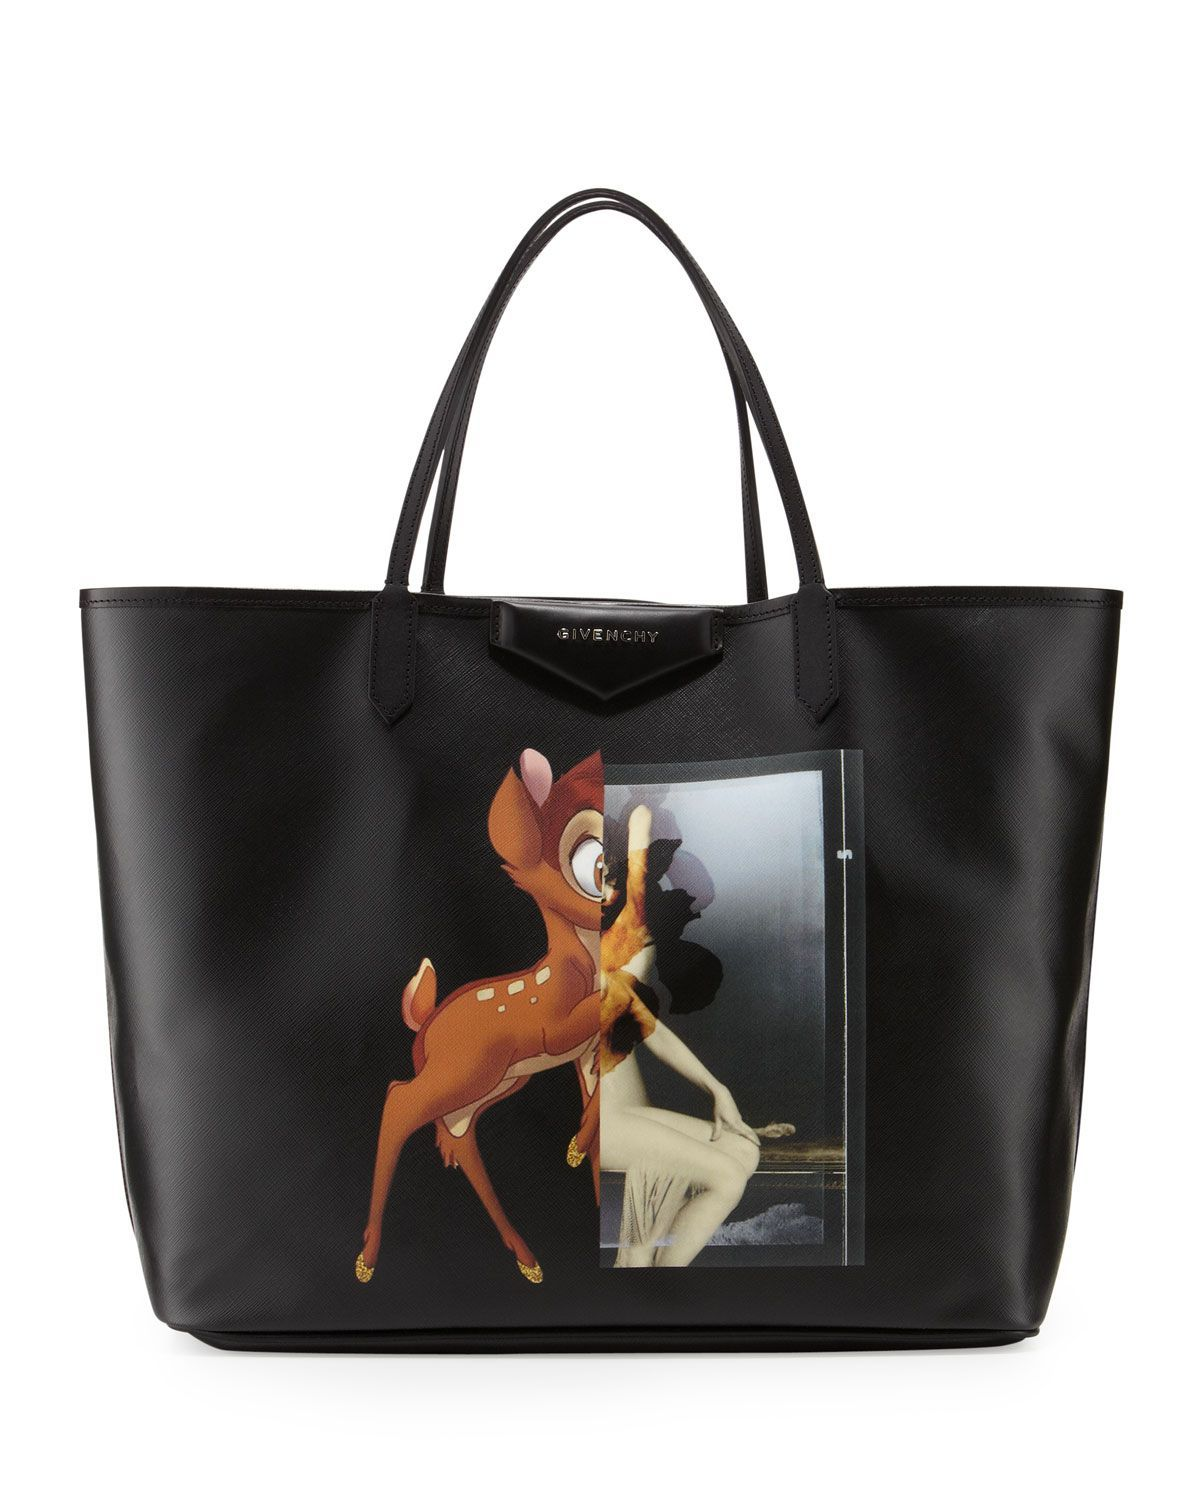 7c5b3957a51 Antigona Large Shopping Tote Bambi Print | BAGS | Givenchy tote bag ...